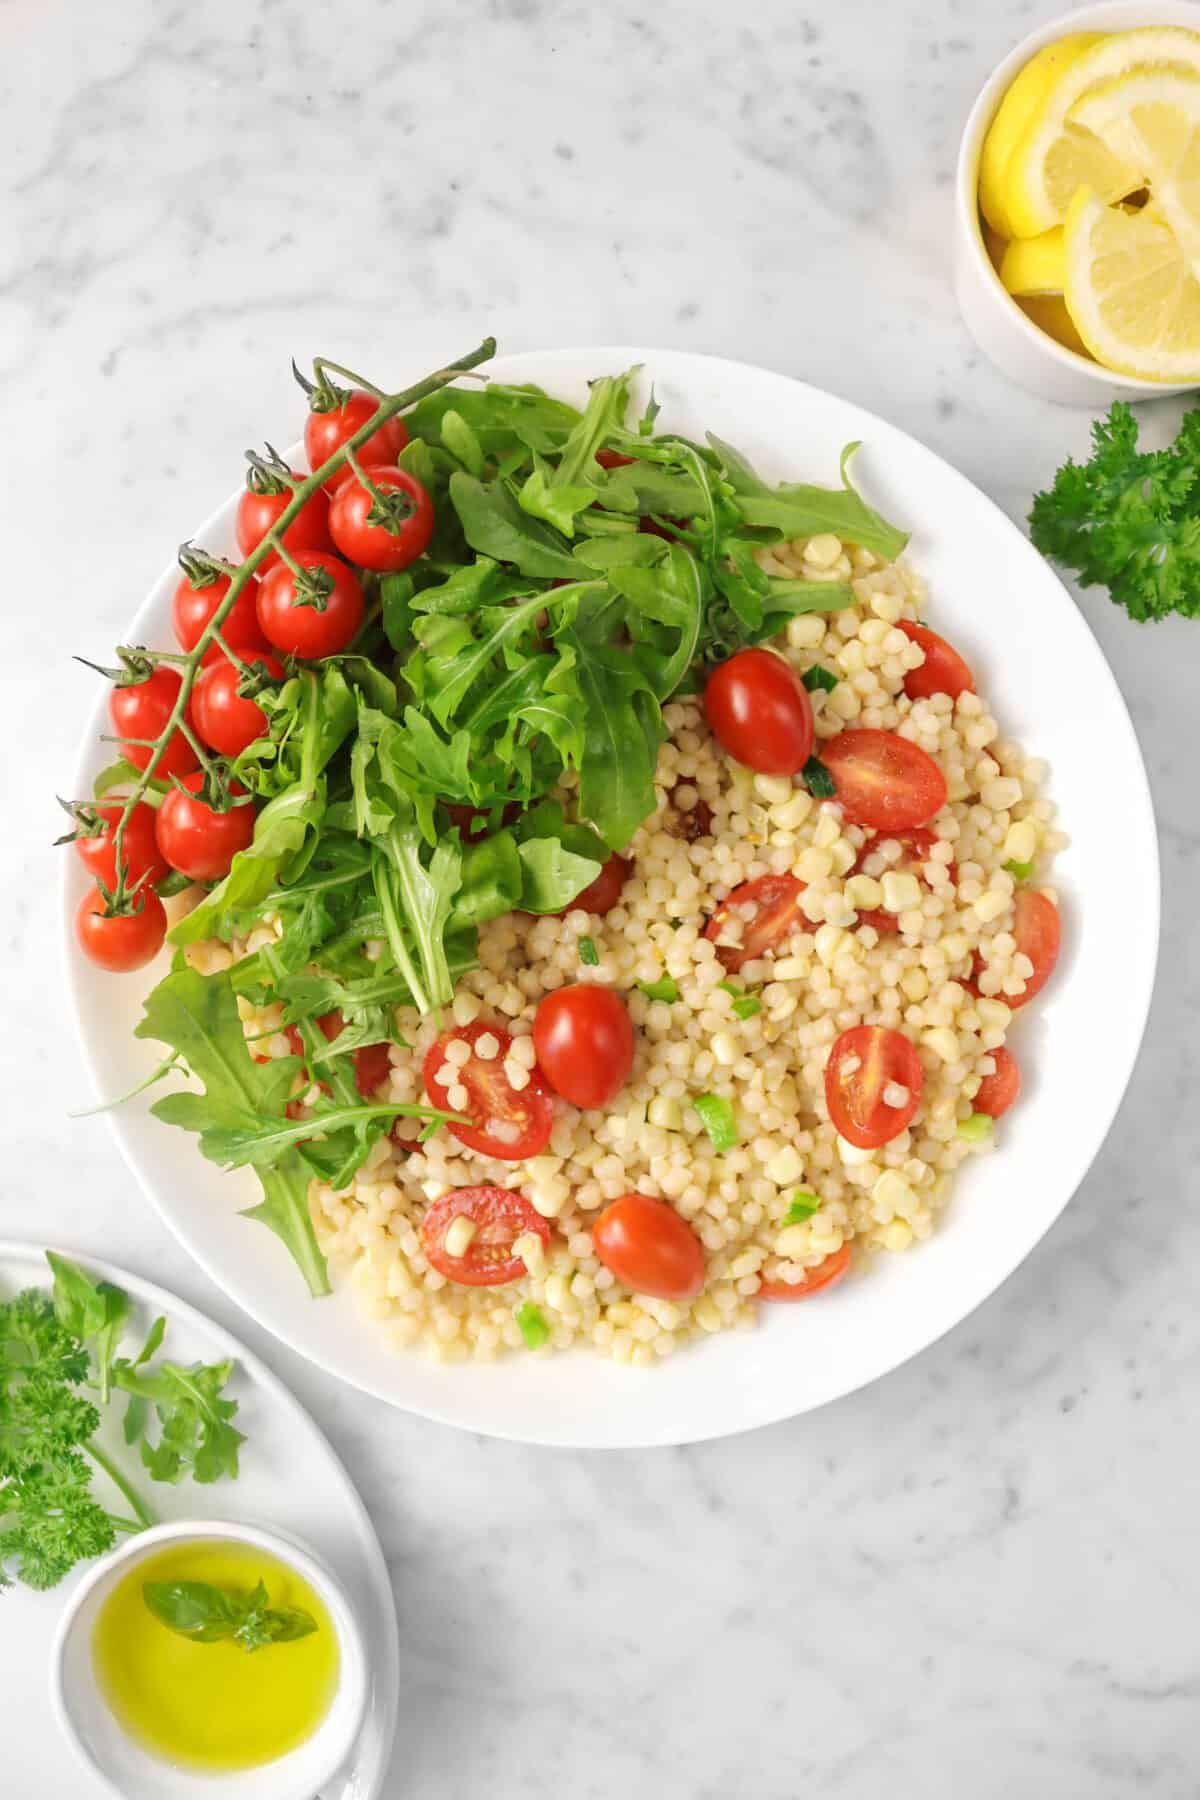 couscous salad in a white bowl with arugula, tomato on the vine, herbs, lemon slices, and oil in a bowl